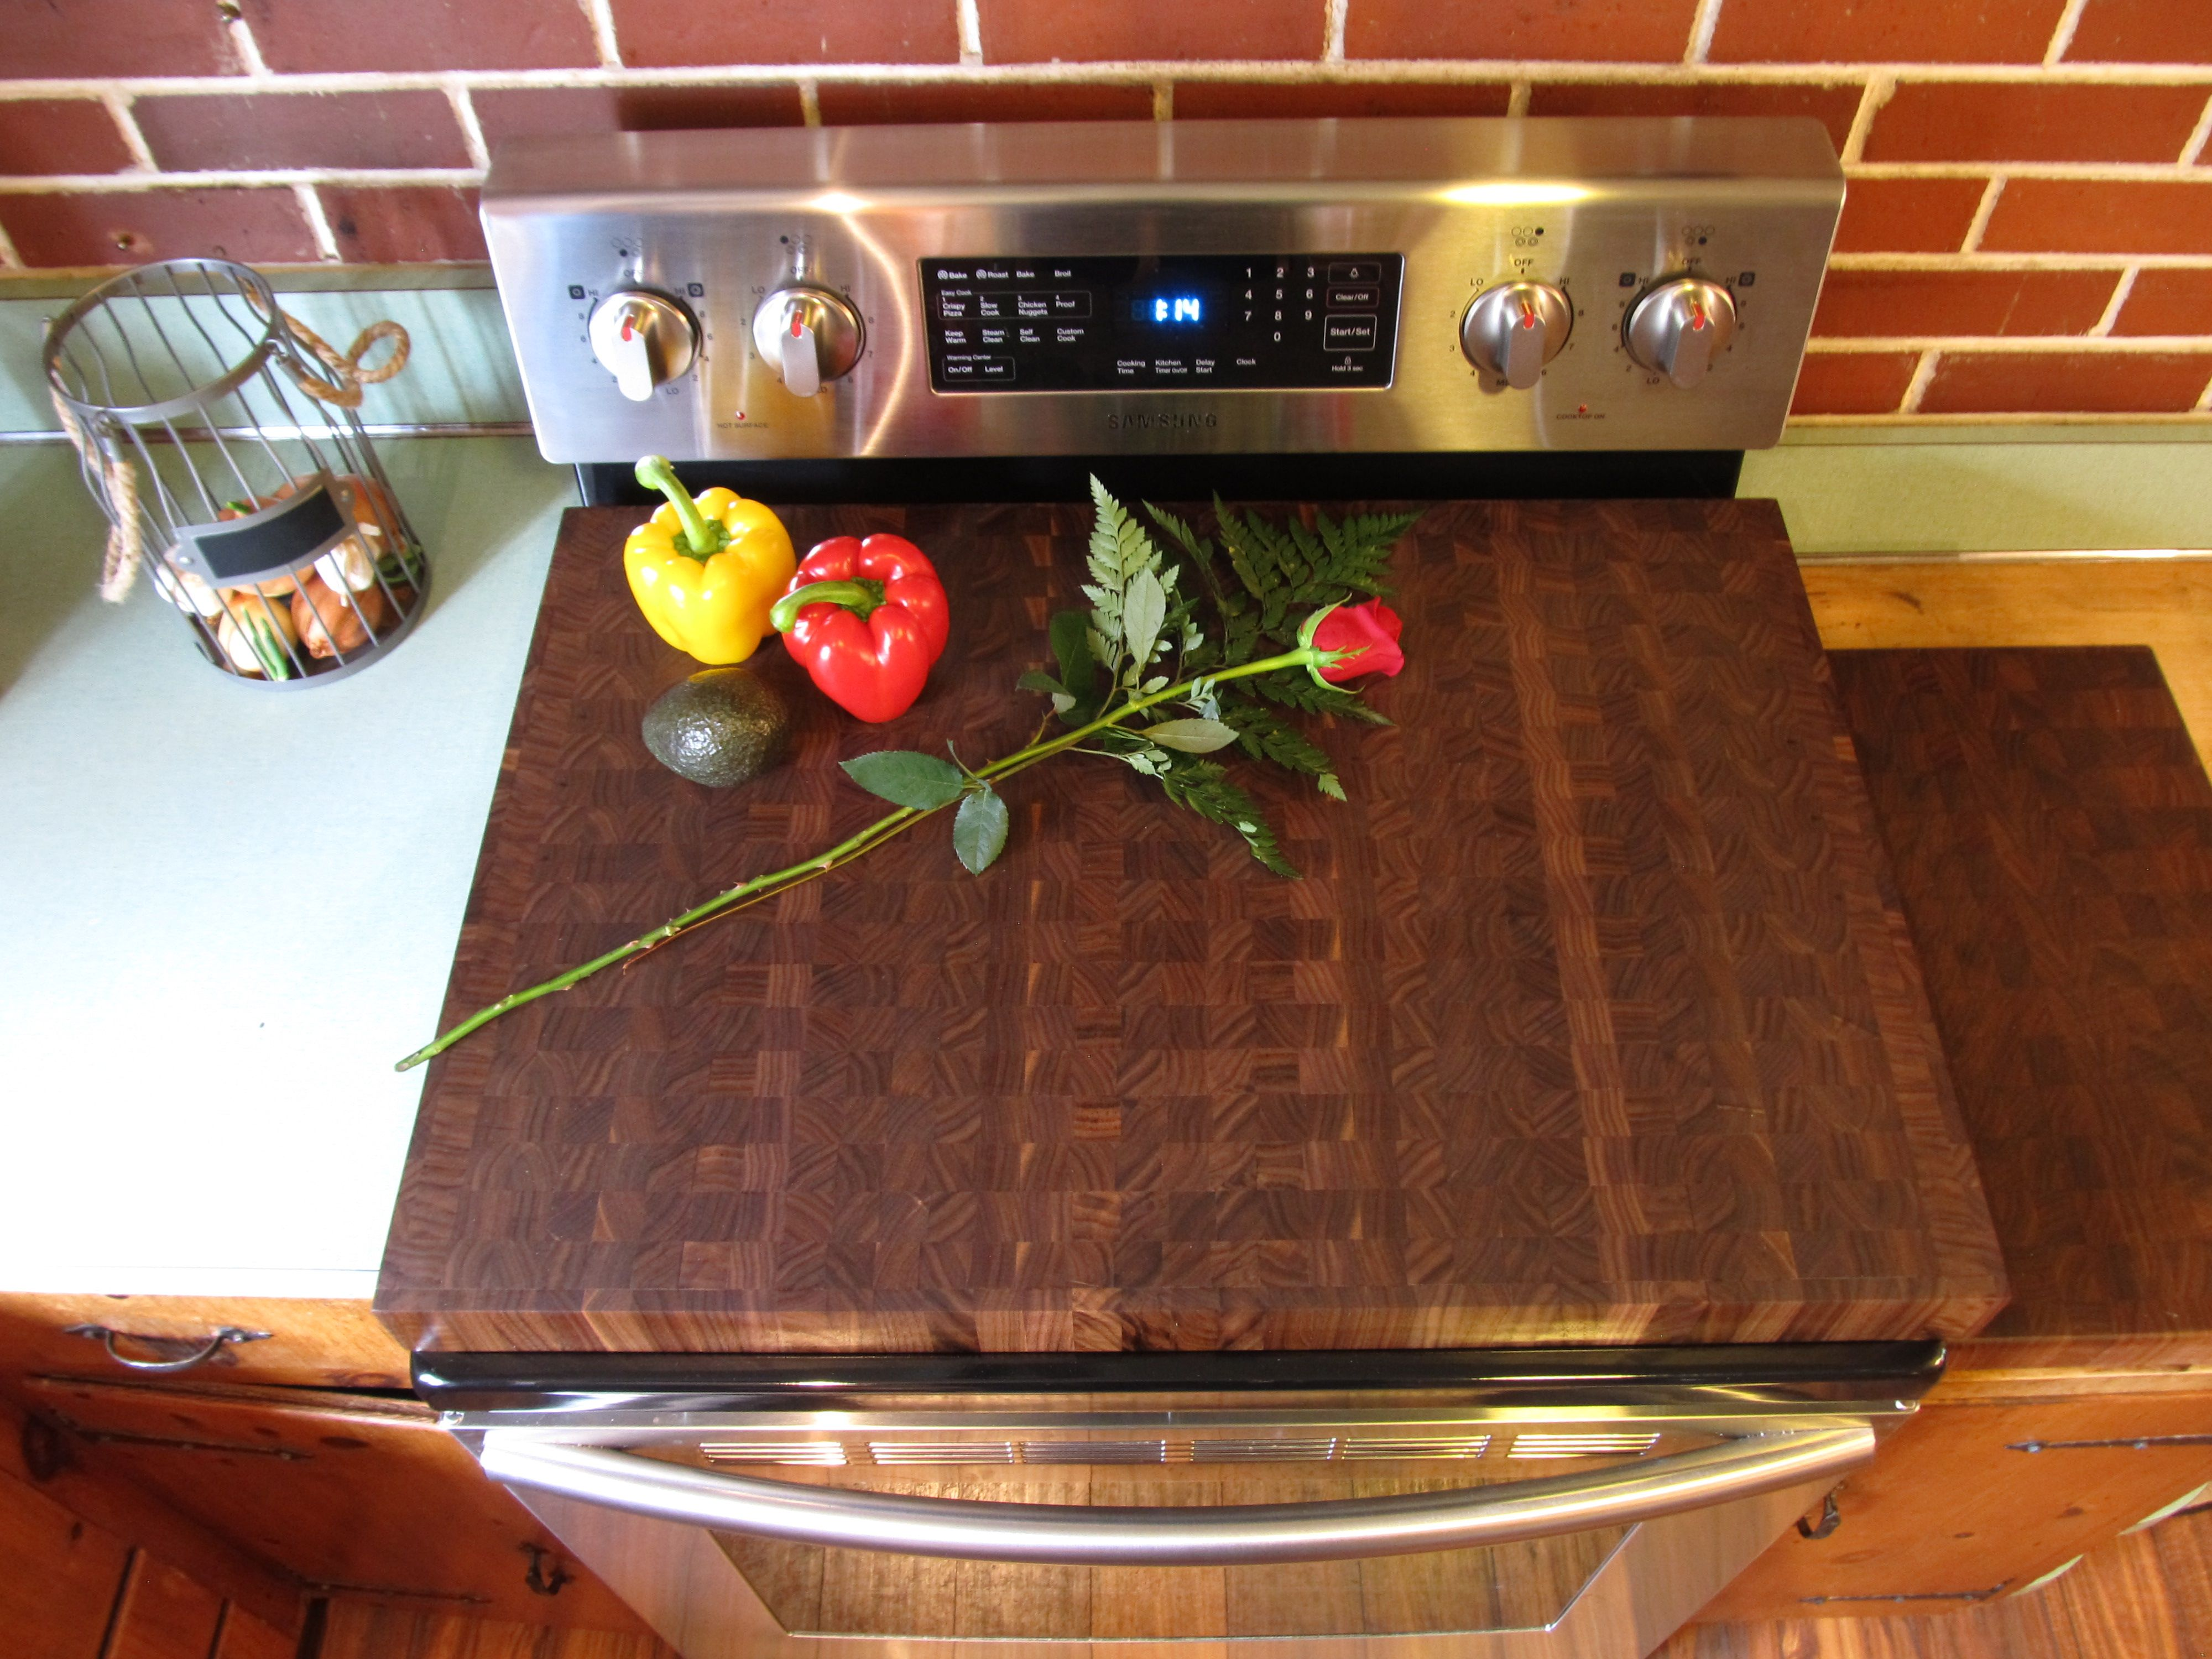 Walnut End Grain One Piece Stove Top Cover Stovetopcovers Stove Top Cover Gas Stove Top Covers Stove Cover